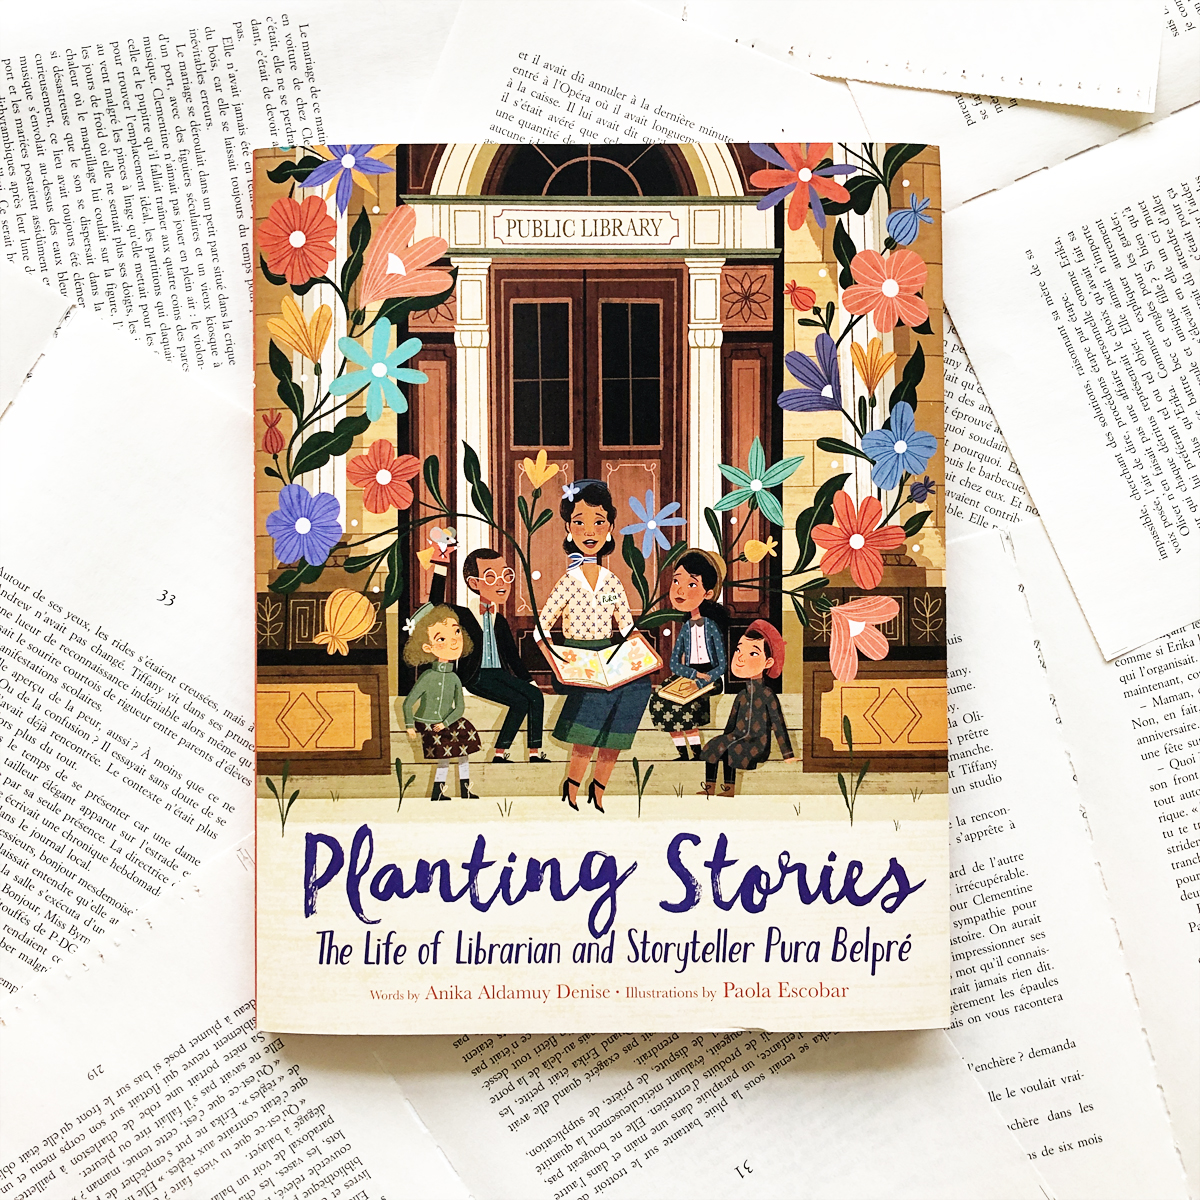 Planting Stories: The Life of Librarian and Storyteller Pura Belpré | Avery and Augustine